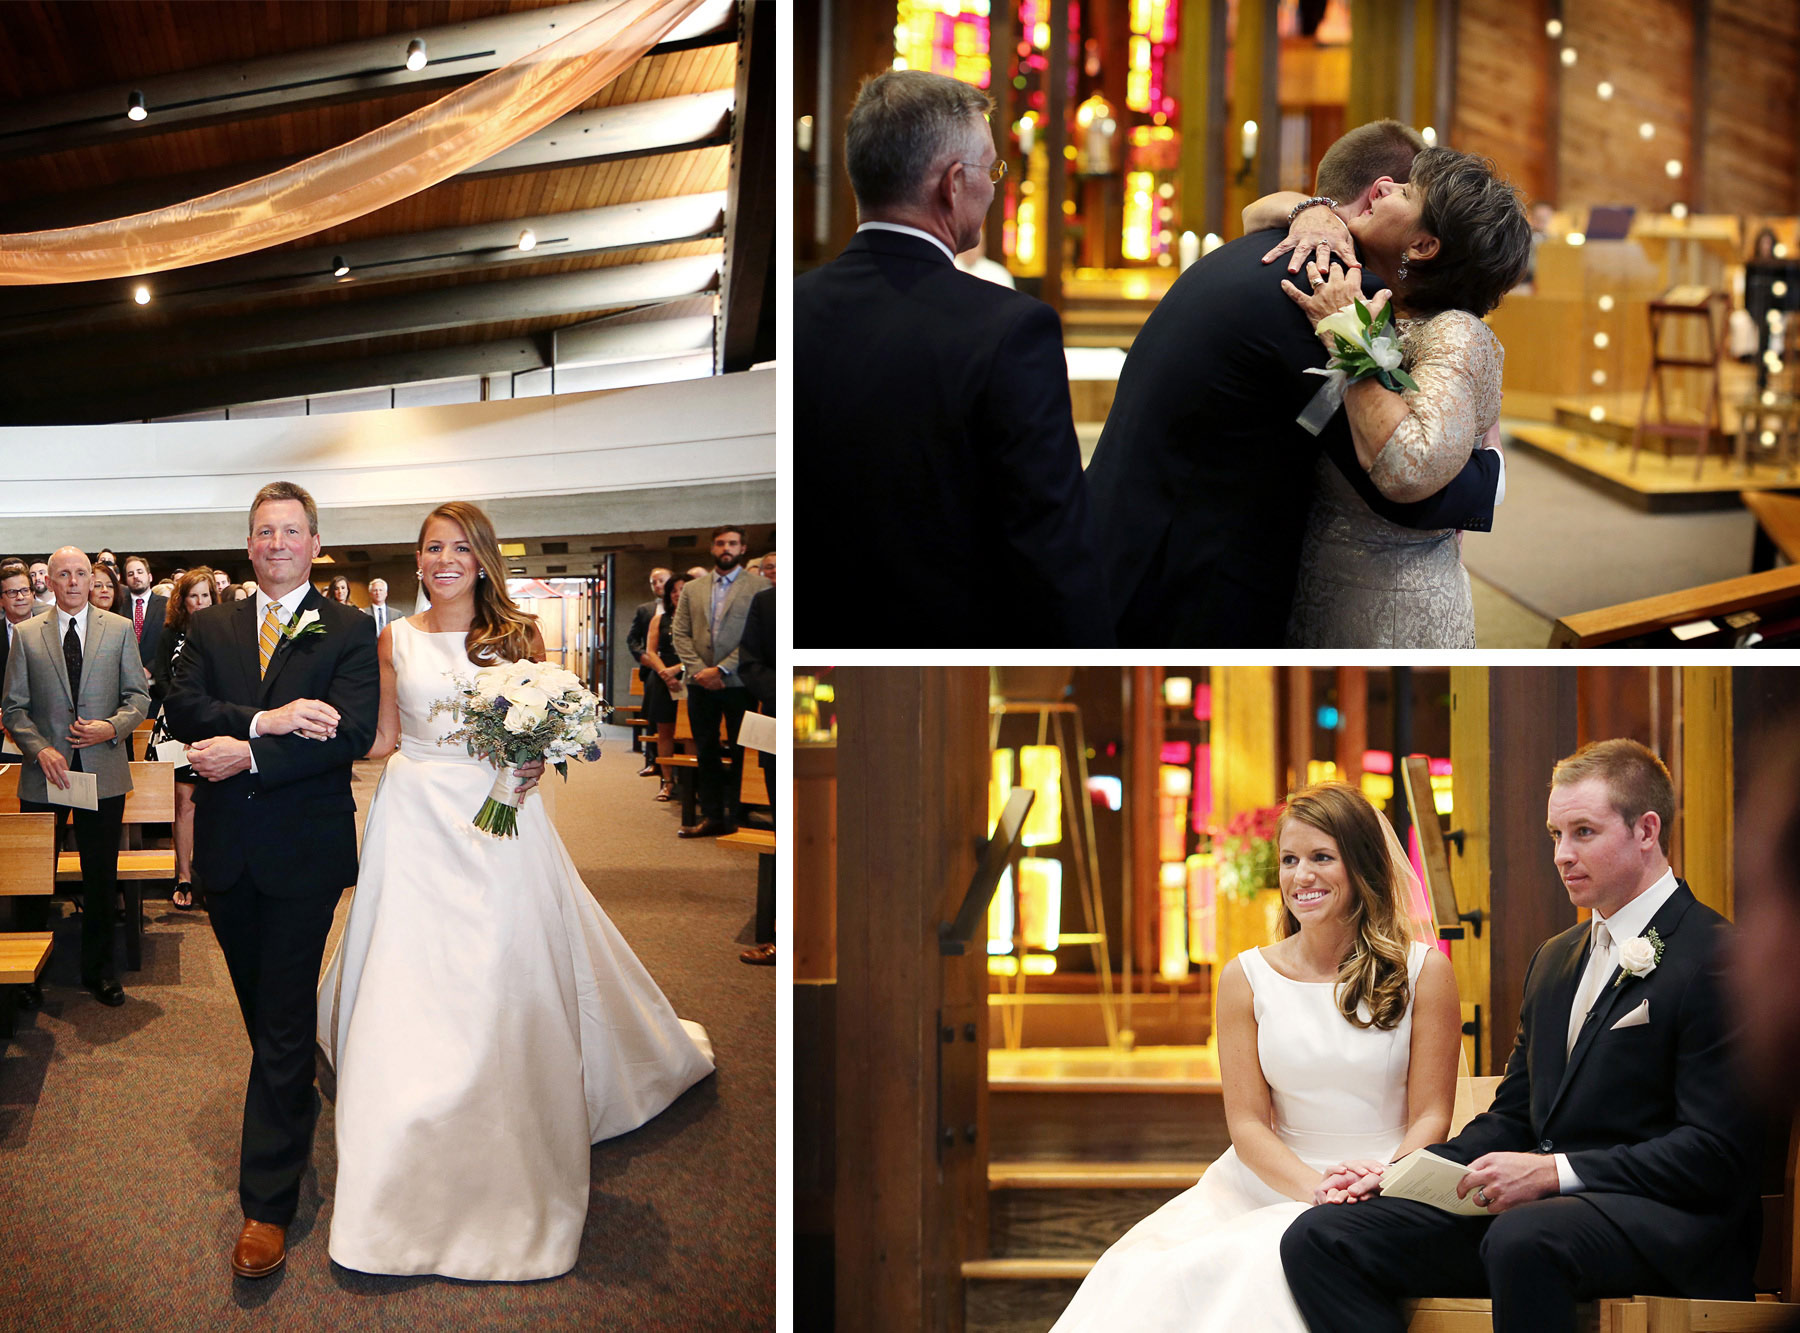 08-Minneapolis-Minnesota-Wedding-Photography-by-Vick-Photography-St-Therese-Church-Ceremony-Elle-and-Tyler.jpg